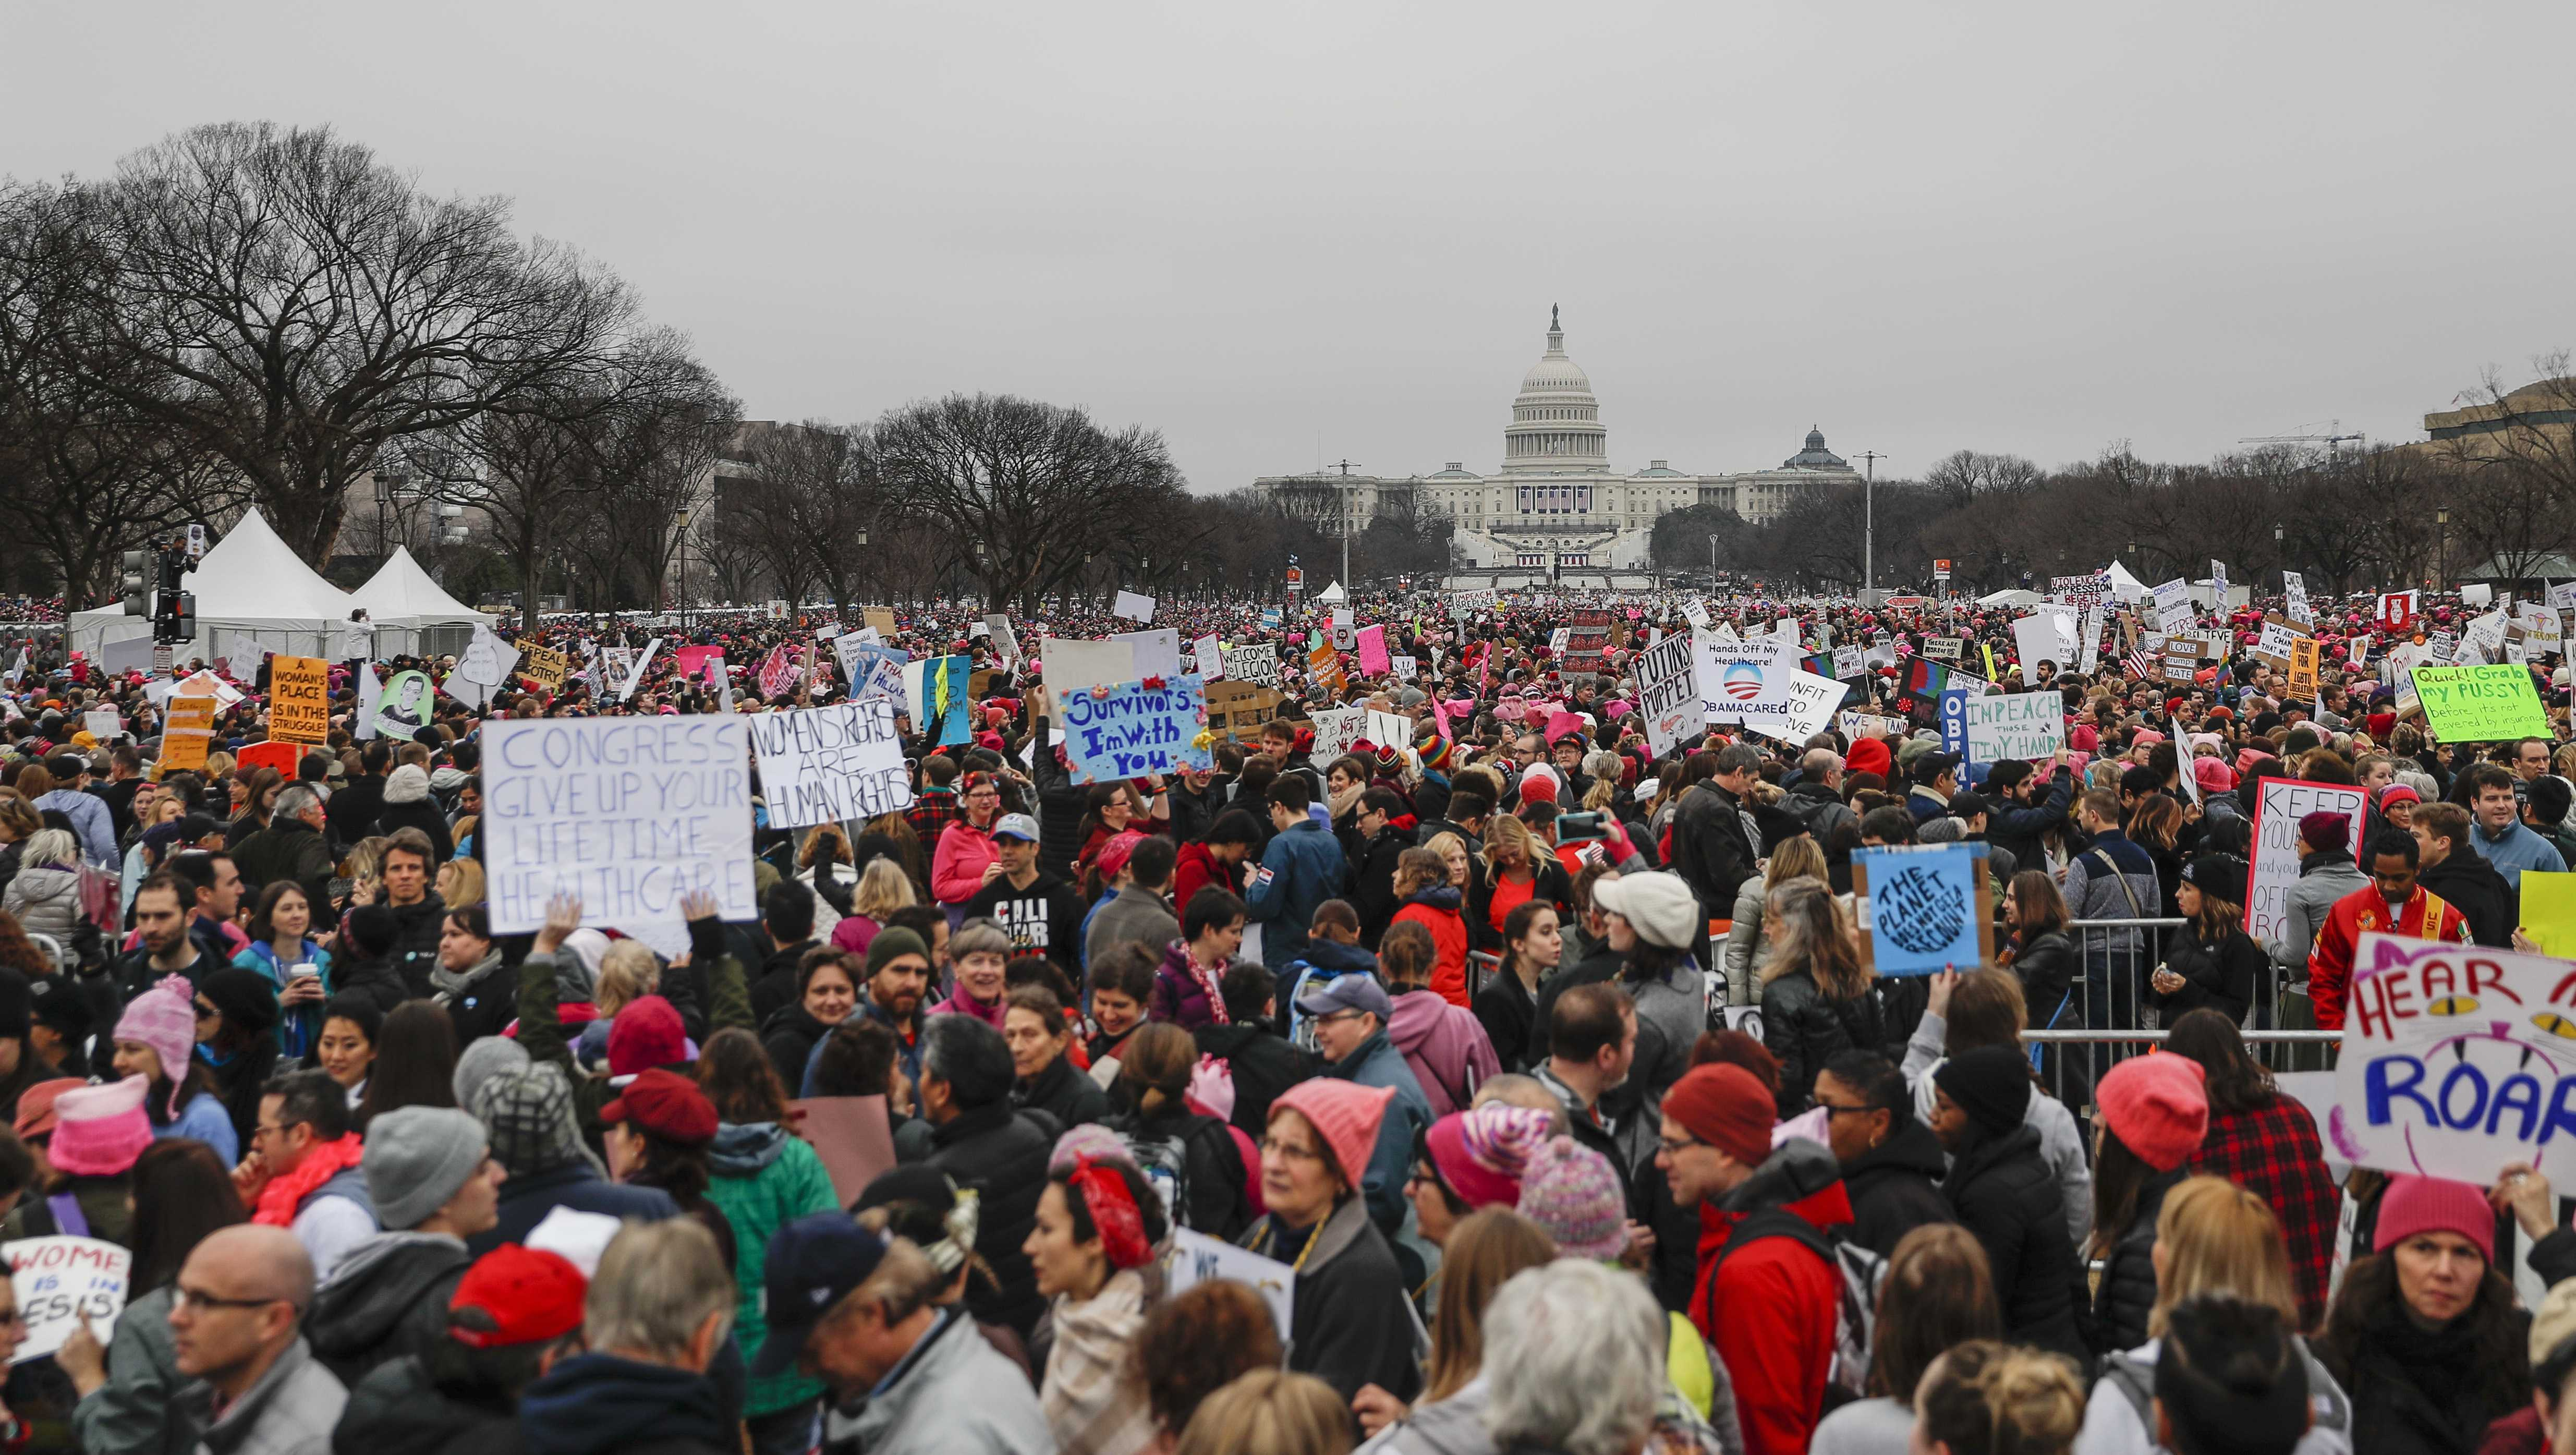 Participants gather for the Women's March on Washington on Independence Ave. on Saturday, Jan. 21, 2017 in Washington.